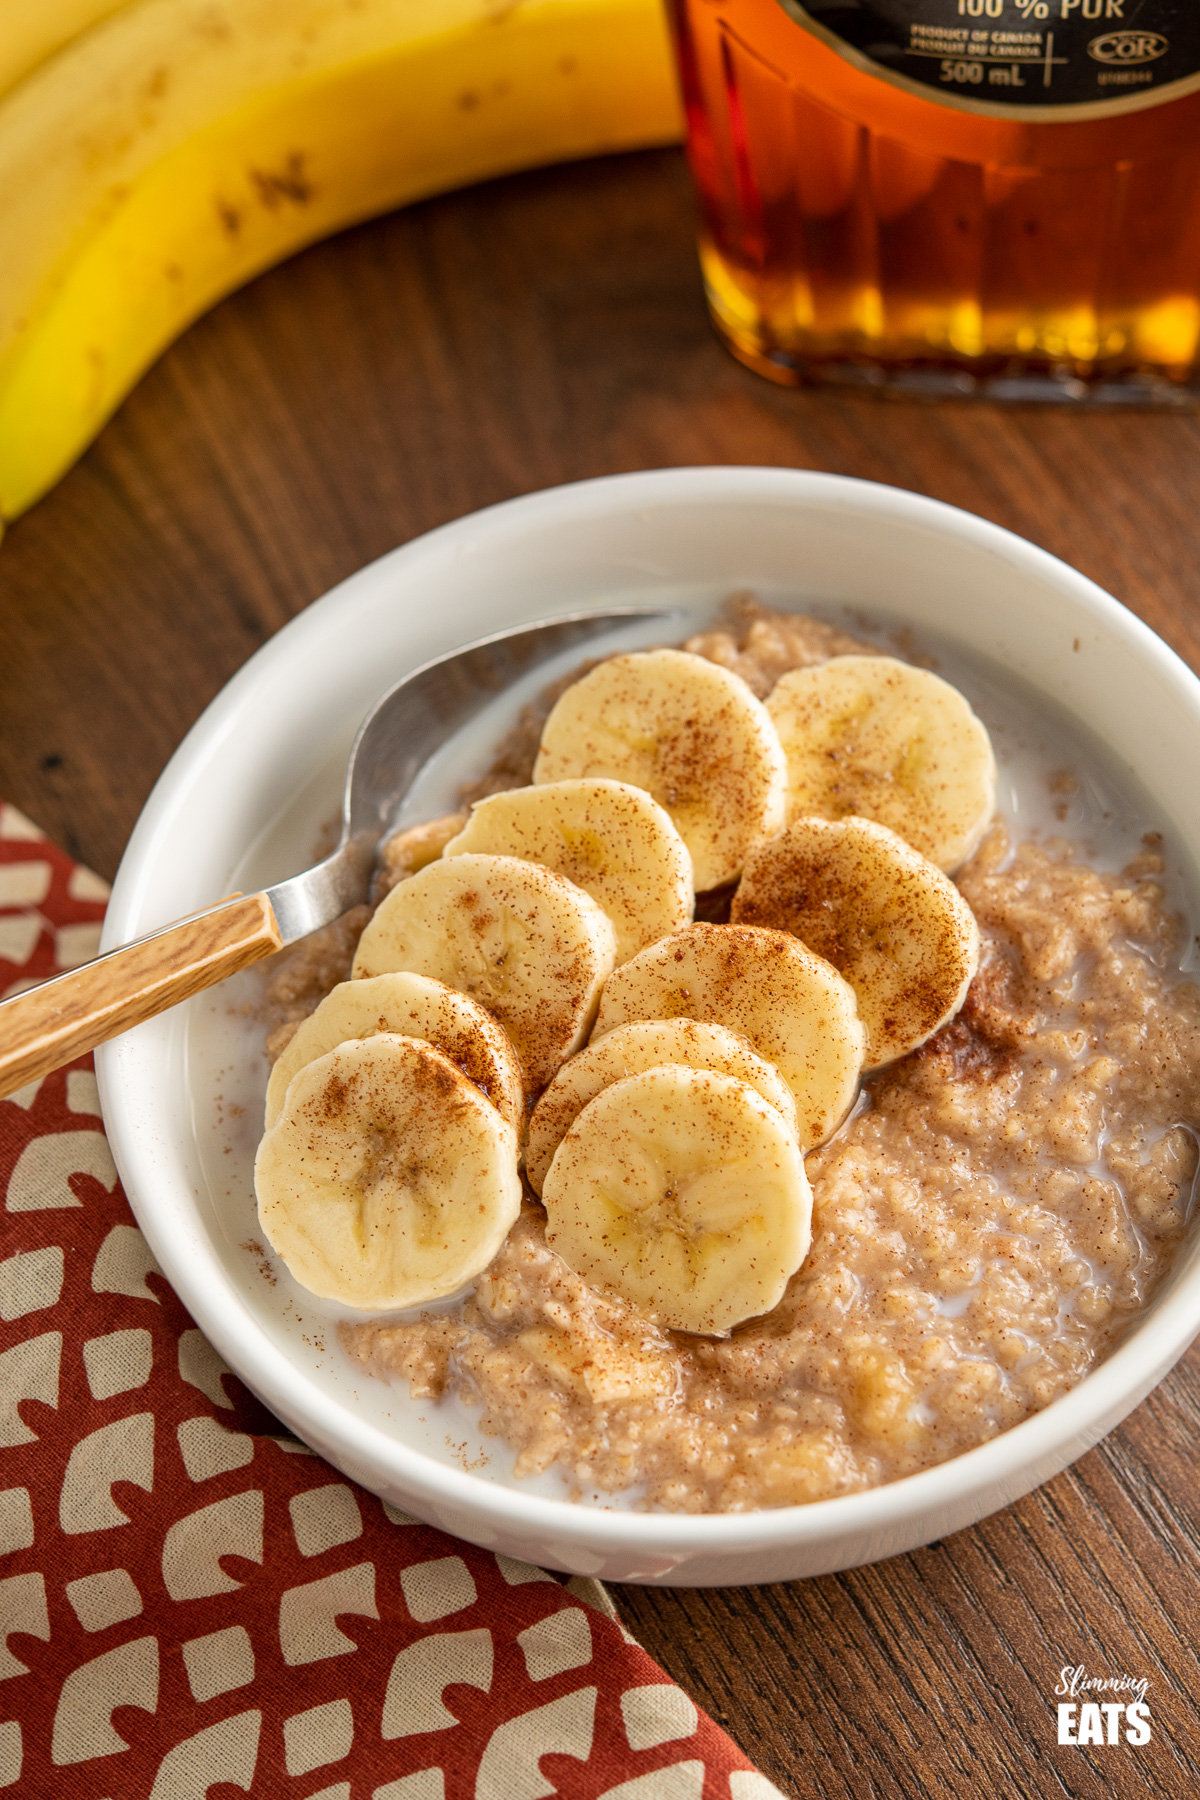 bowl of creamy milky banana cinnamon maple oatmeal with wooden handled spoon and banana and maple syrup bottle in the background